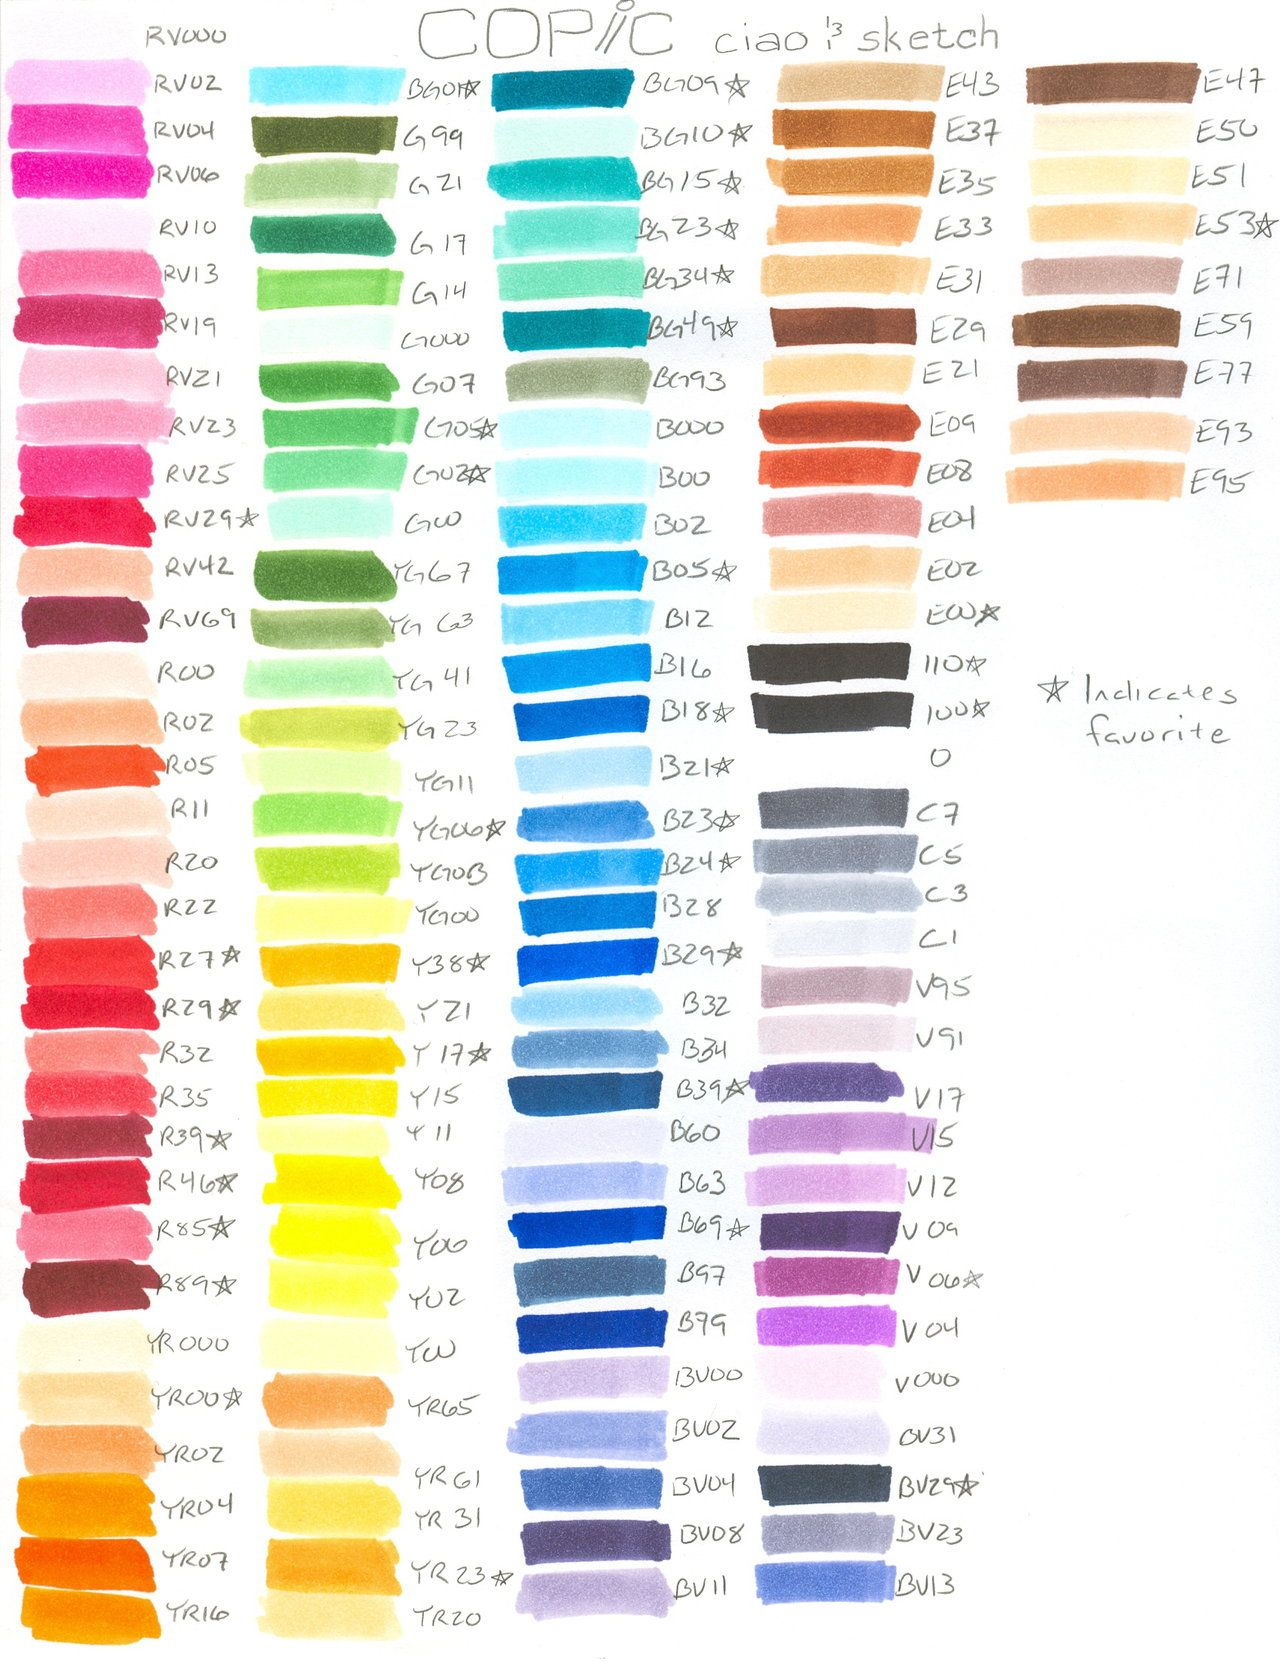 081010 Copic Markers by GillyPerkyGoth on DeviantArt Colors